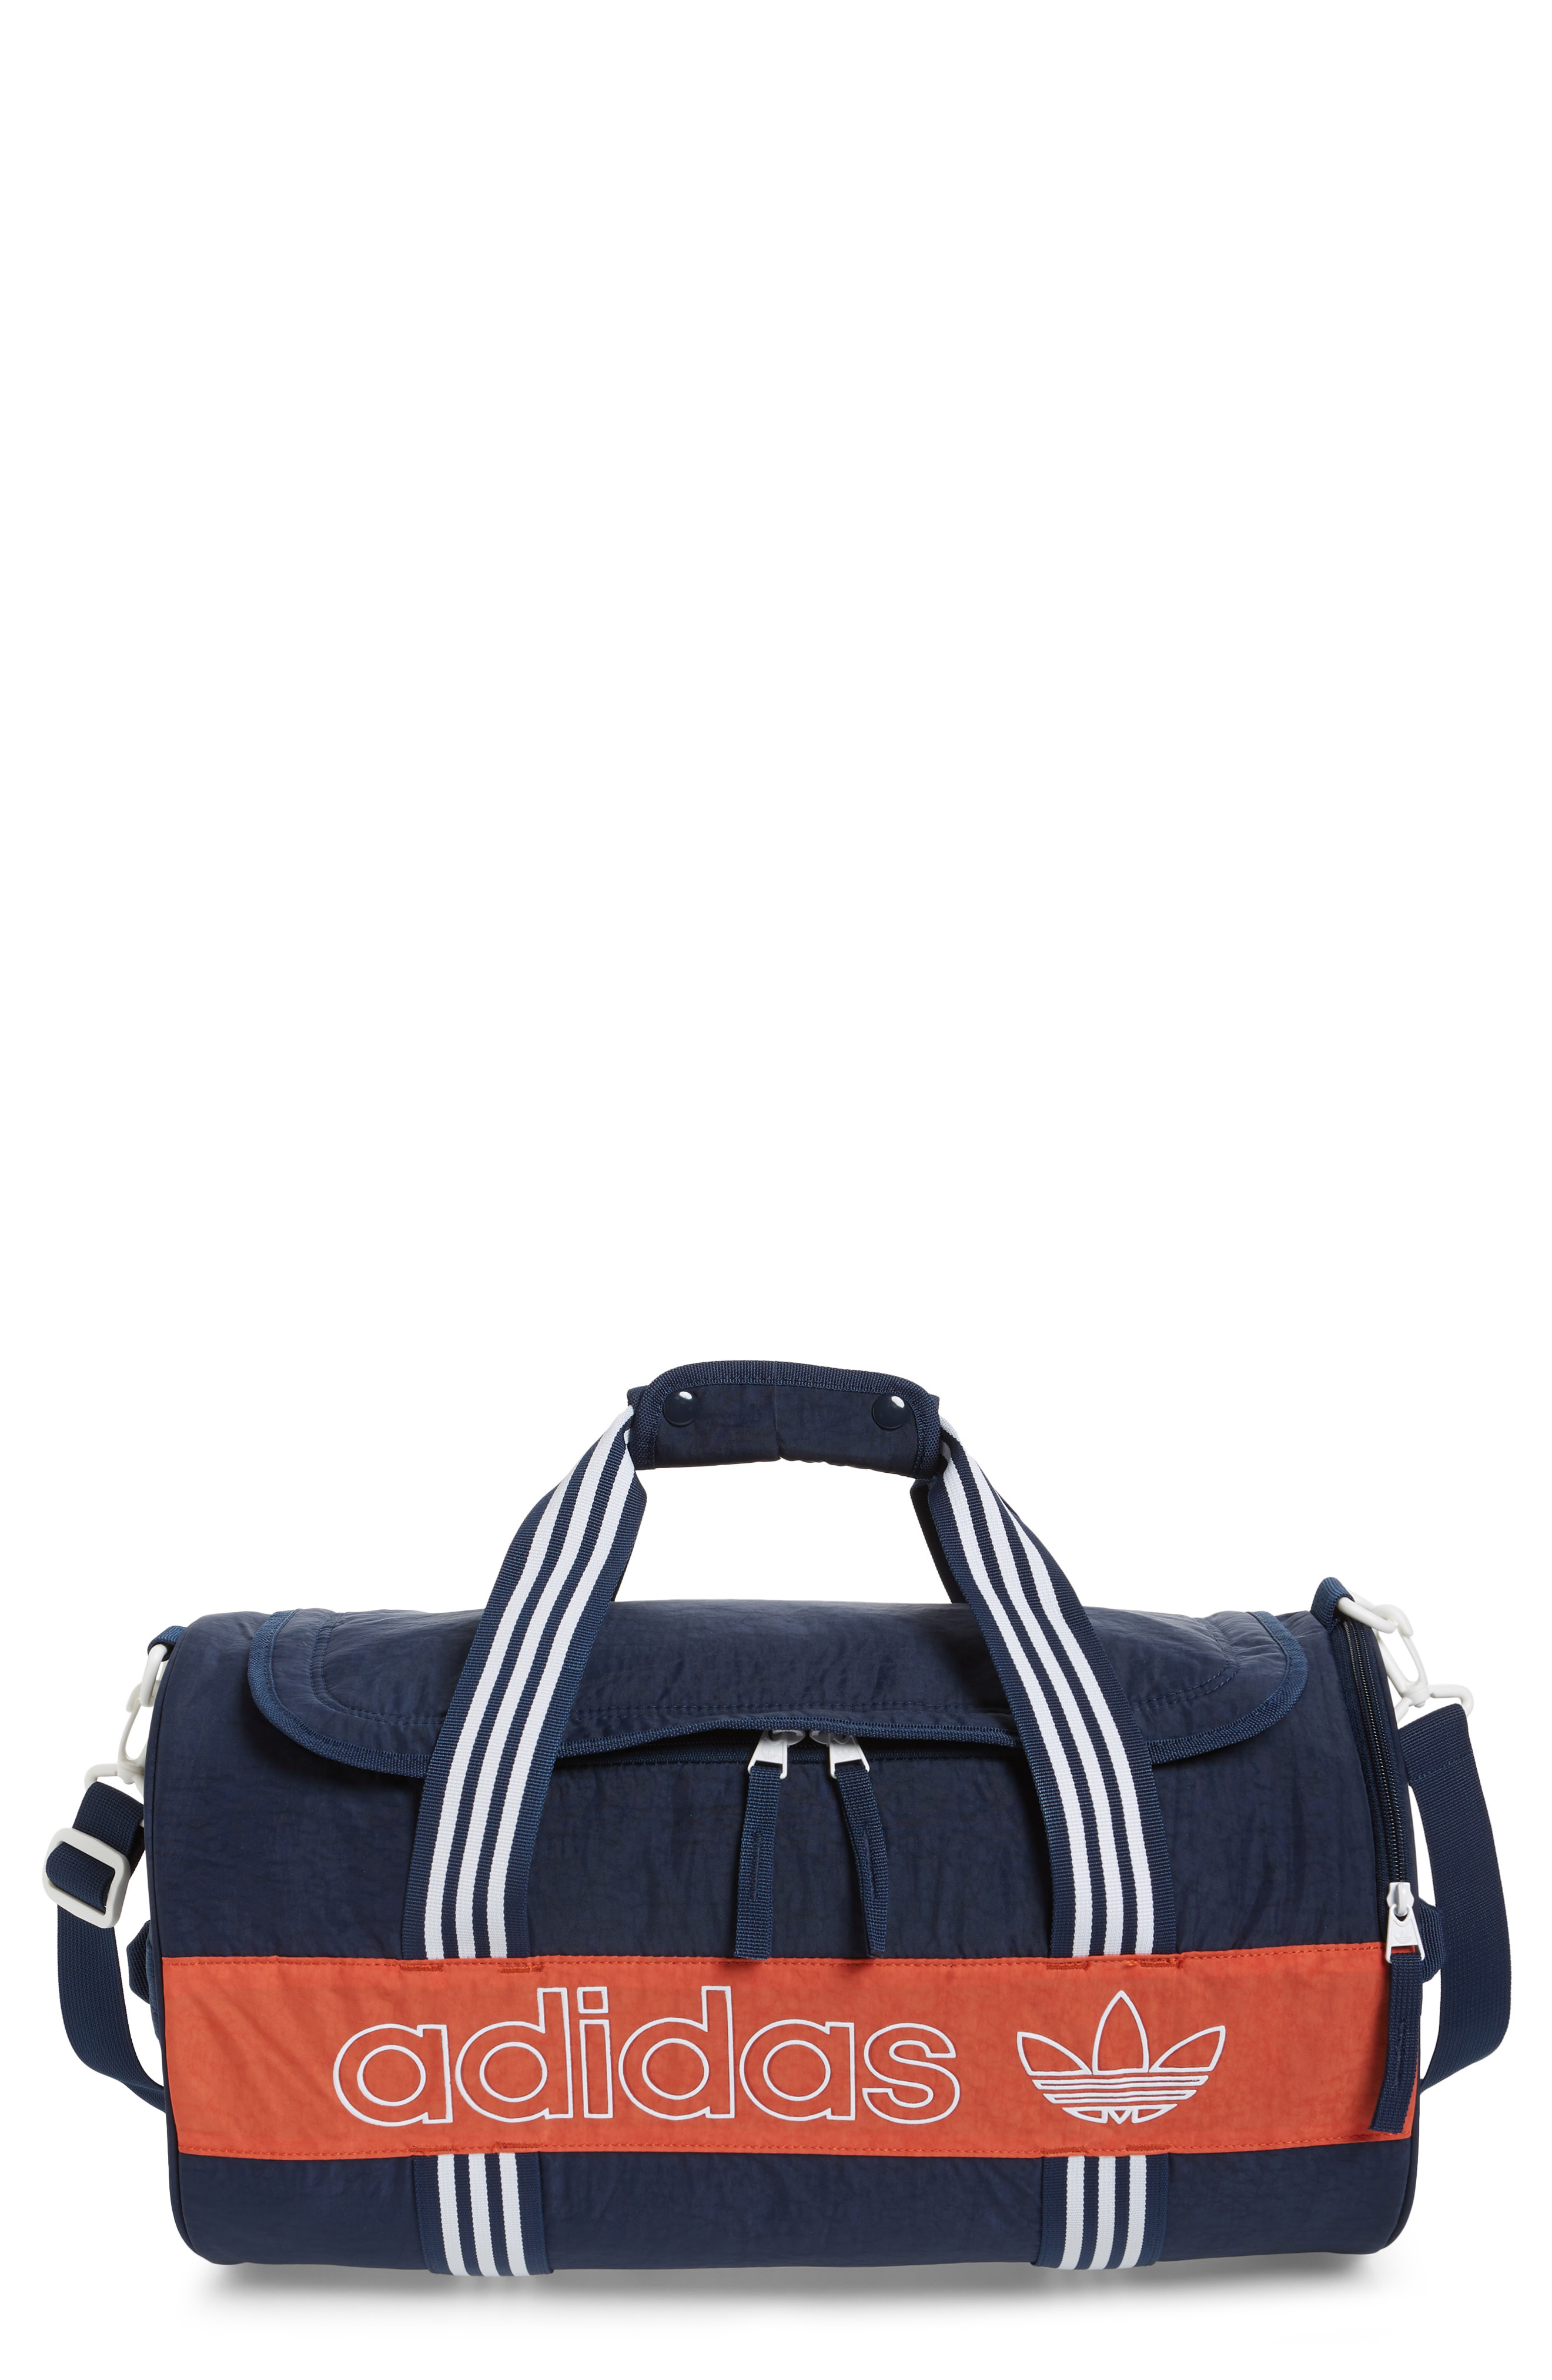 cff1d8032e22 Adidas Originals Adidas Spirit Roll Duffel Bag - Blue In Collegiate ...